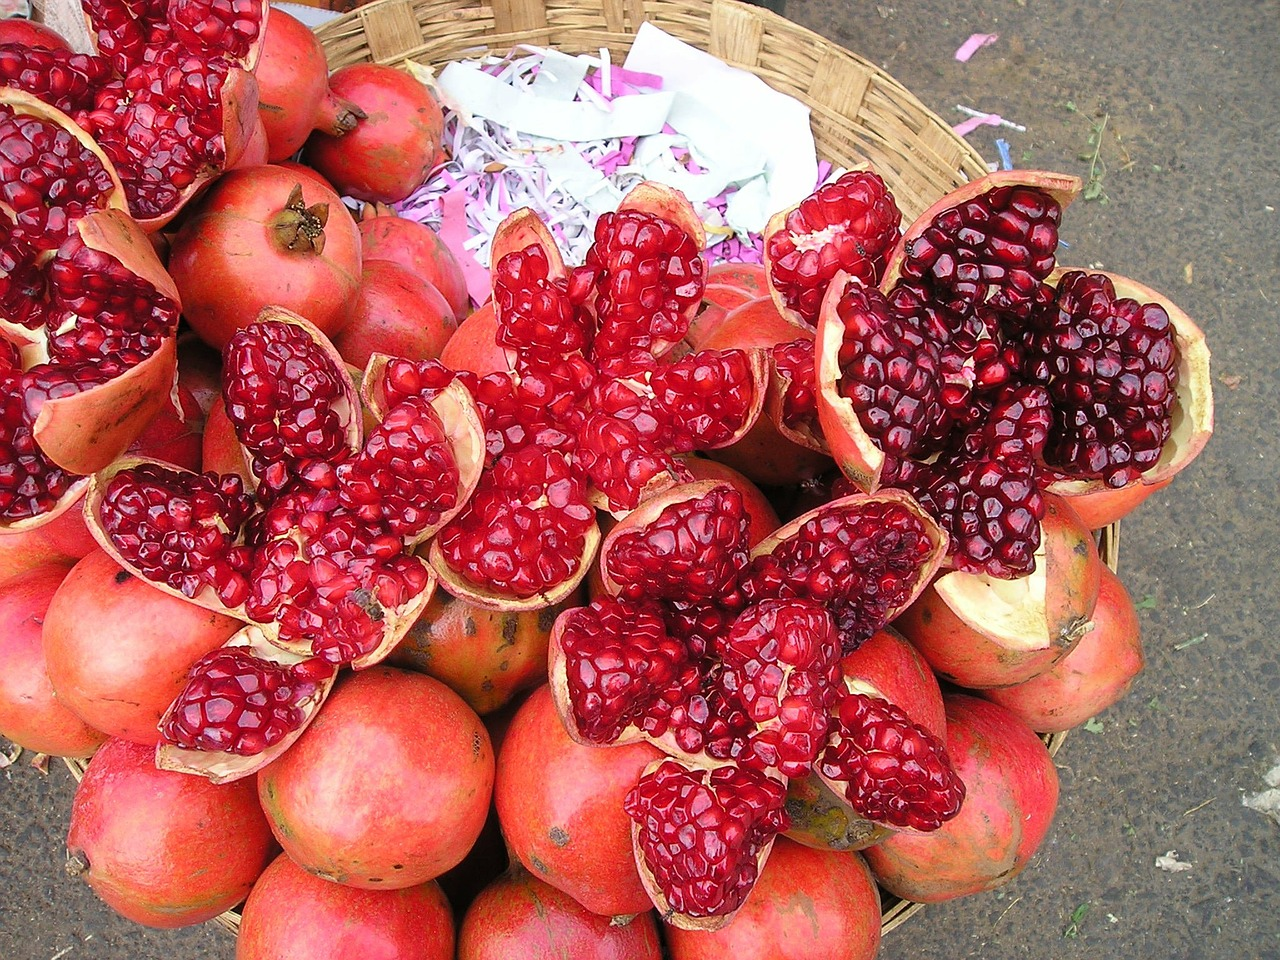 Goychay Pomegranate Festival. Planning a trip to the Sout Caucasus in the fall? Here are the best autumn festivals in the South Caucasus to add to your Caucasus itinerary